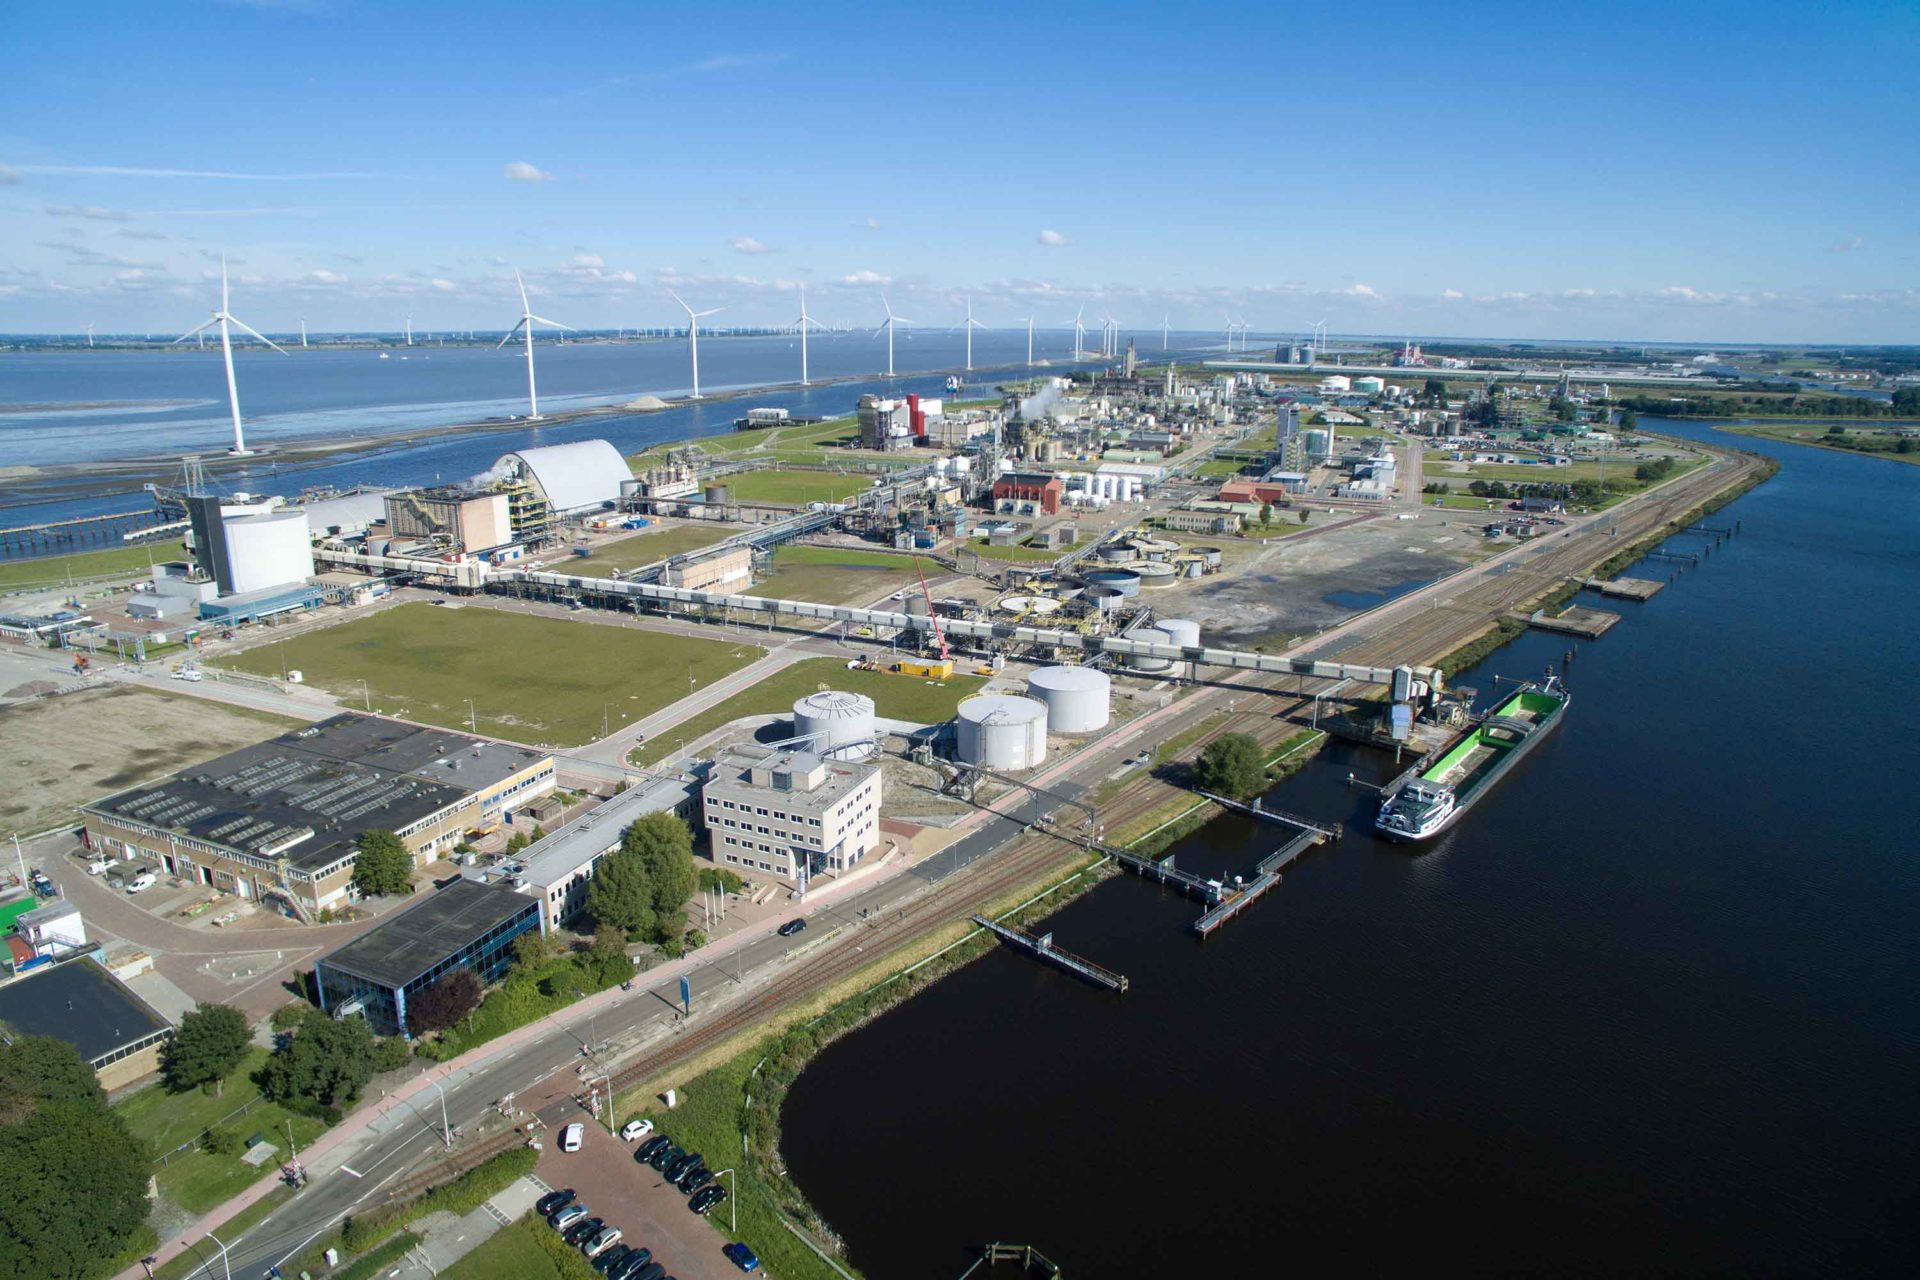 North Netherlands aims to close green cycles